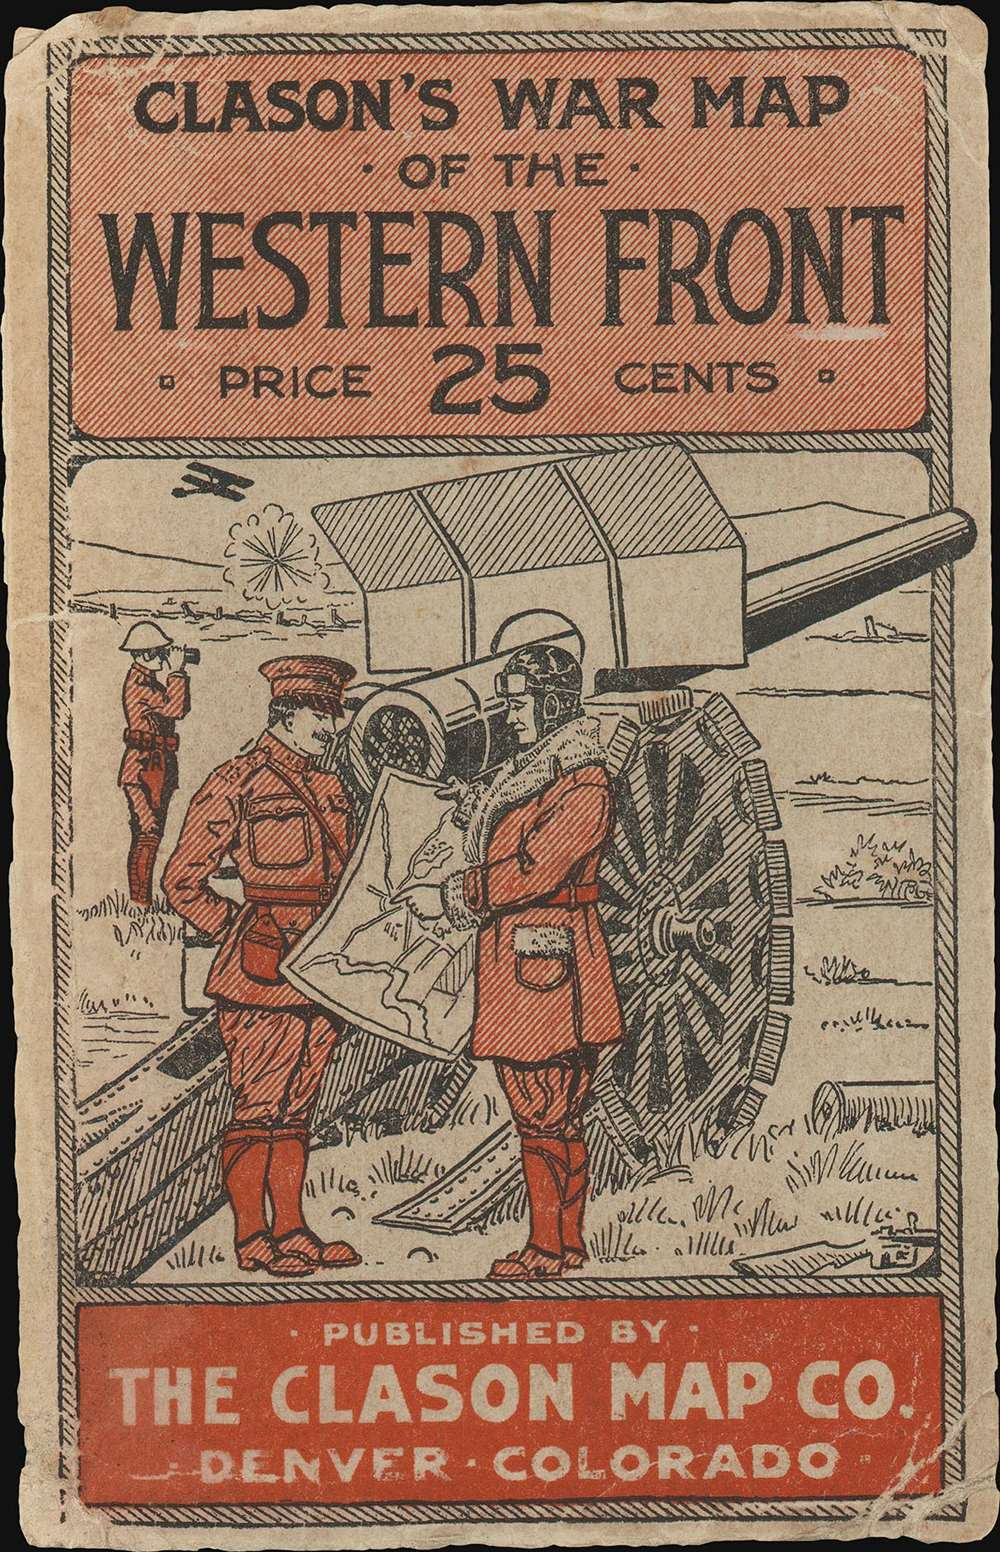 Clason's War Map of the Western Front. - Alternate View 1